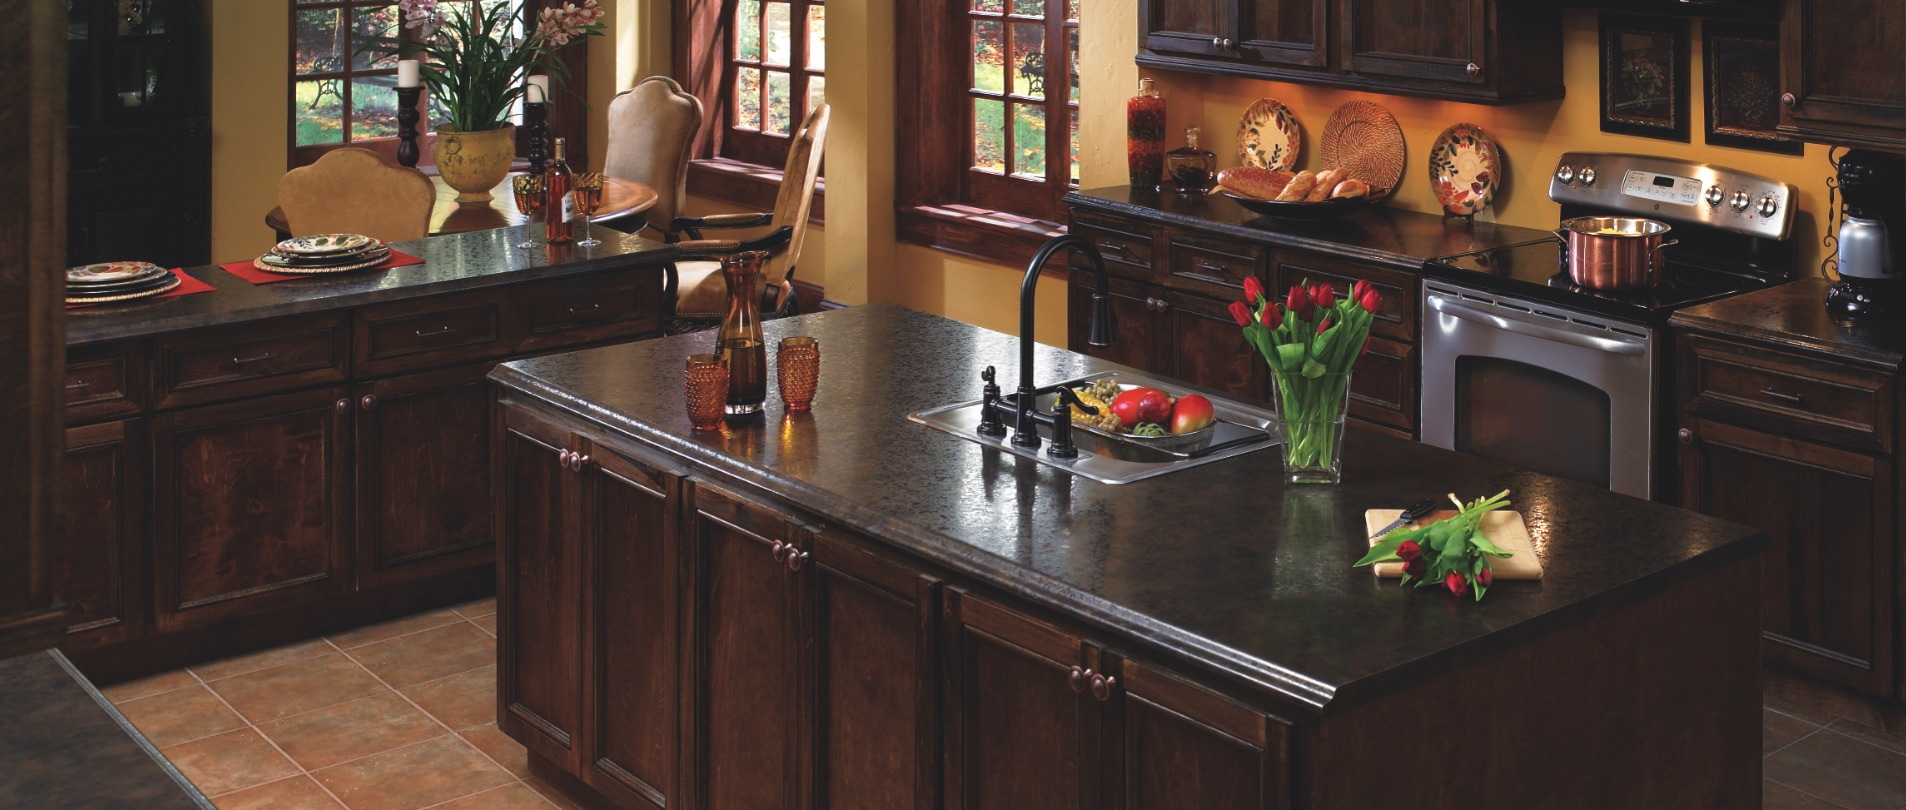 pretty wooden kitchen island with wilsonart laminate countertops and sink plus dark faucet for kitchen decor ideas